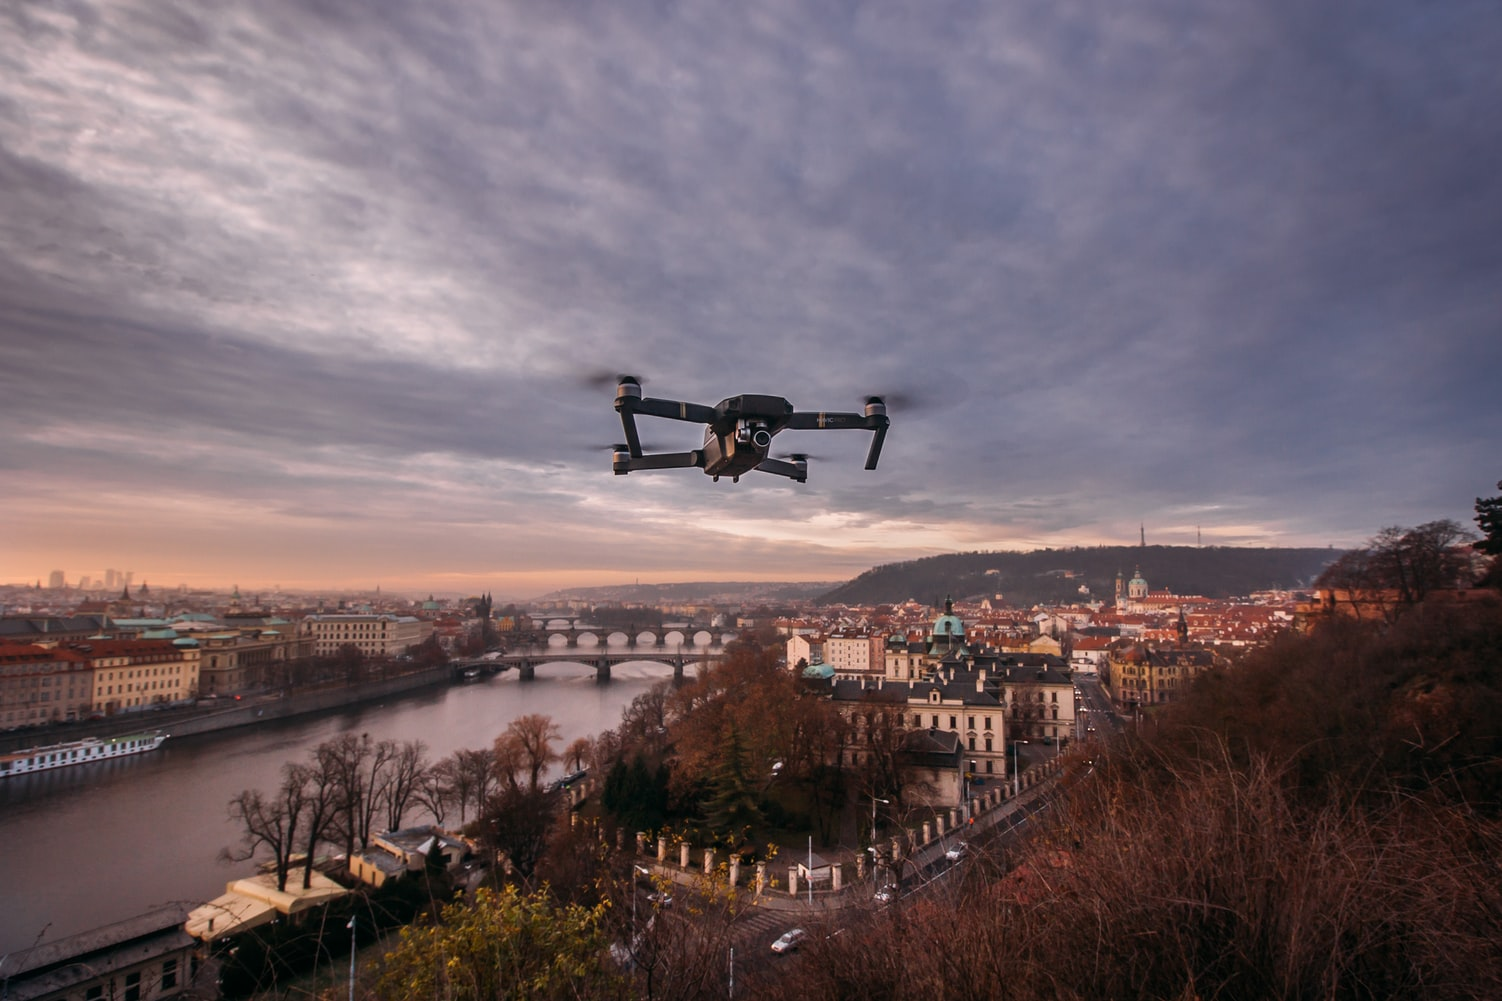 drone flying high with an aireal view of the city